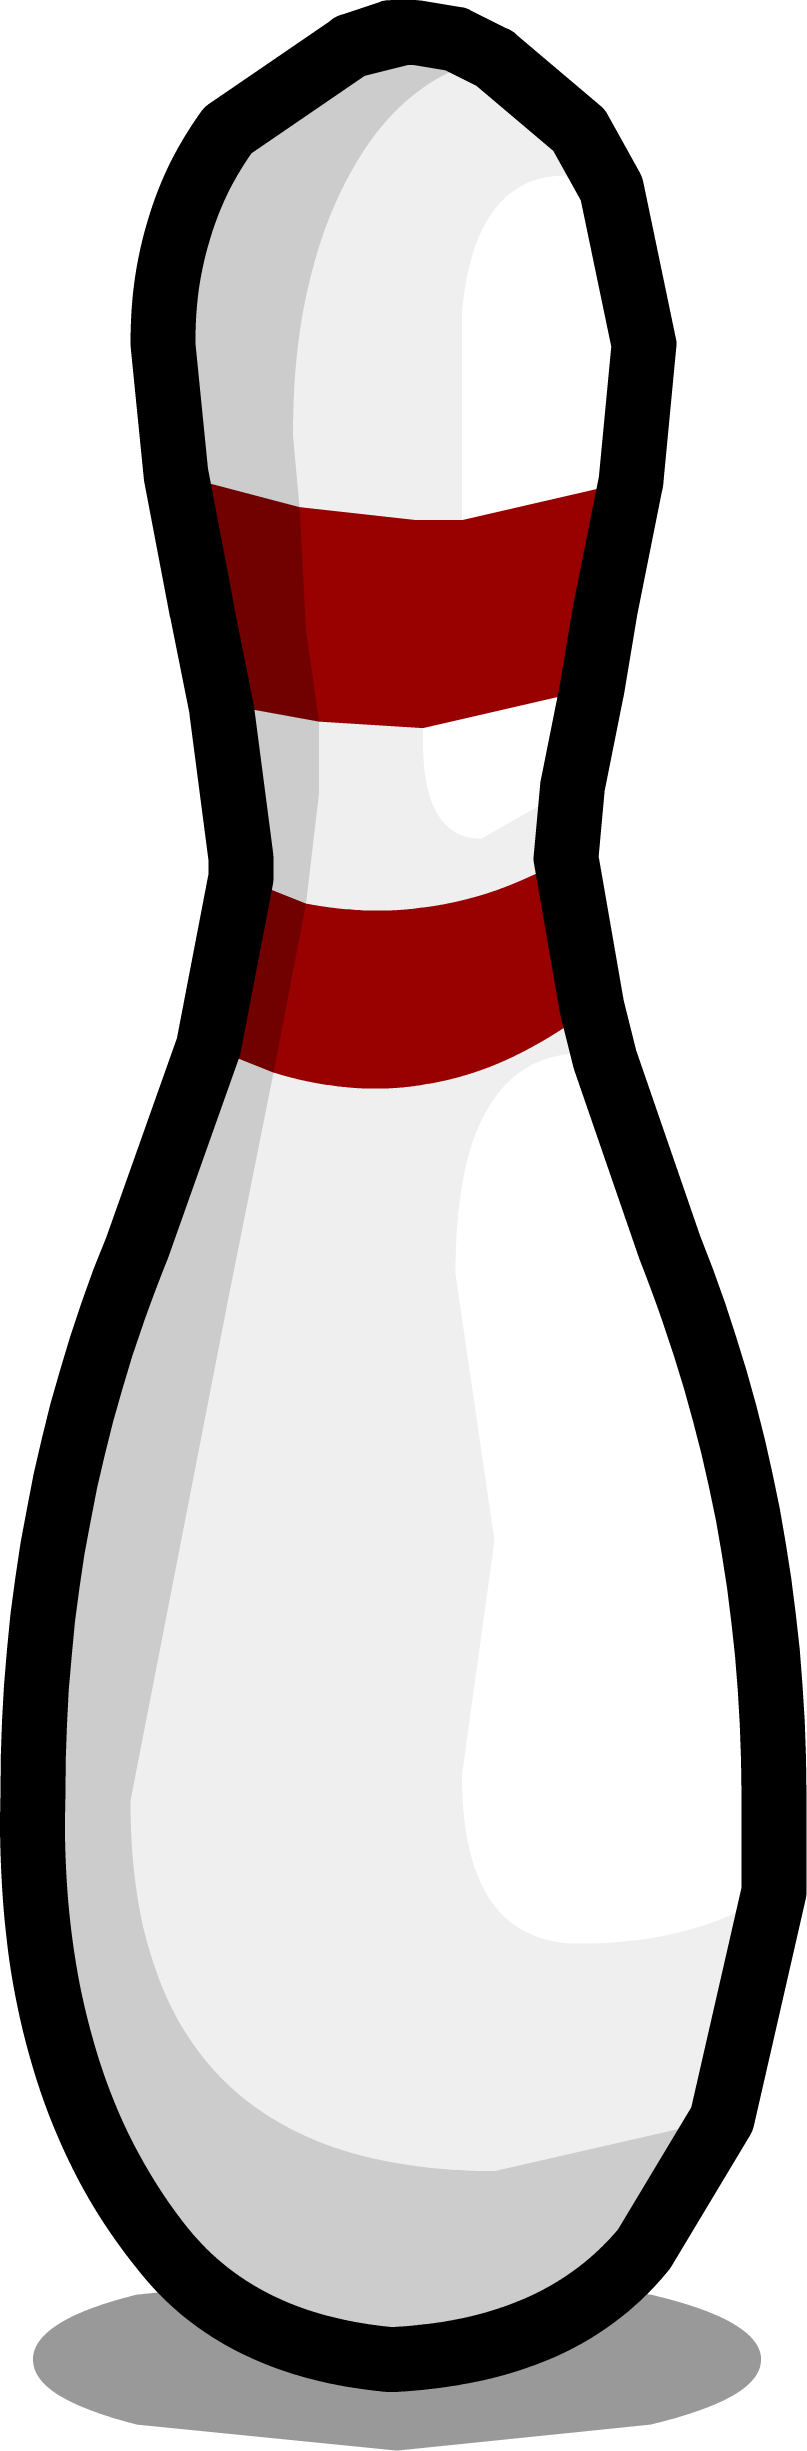 Pin club penguin wiki. Floor clipart bowling alley